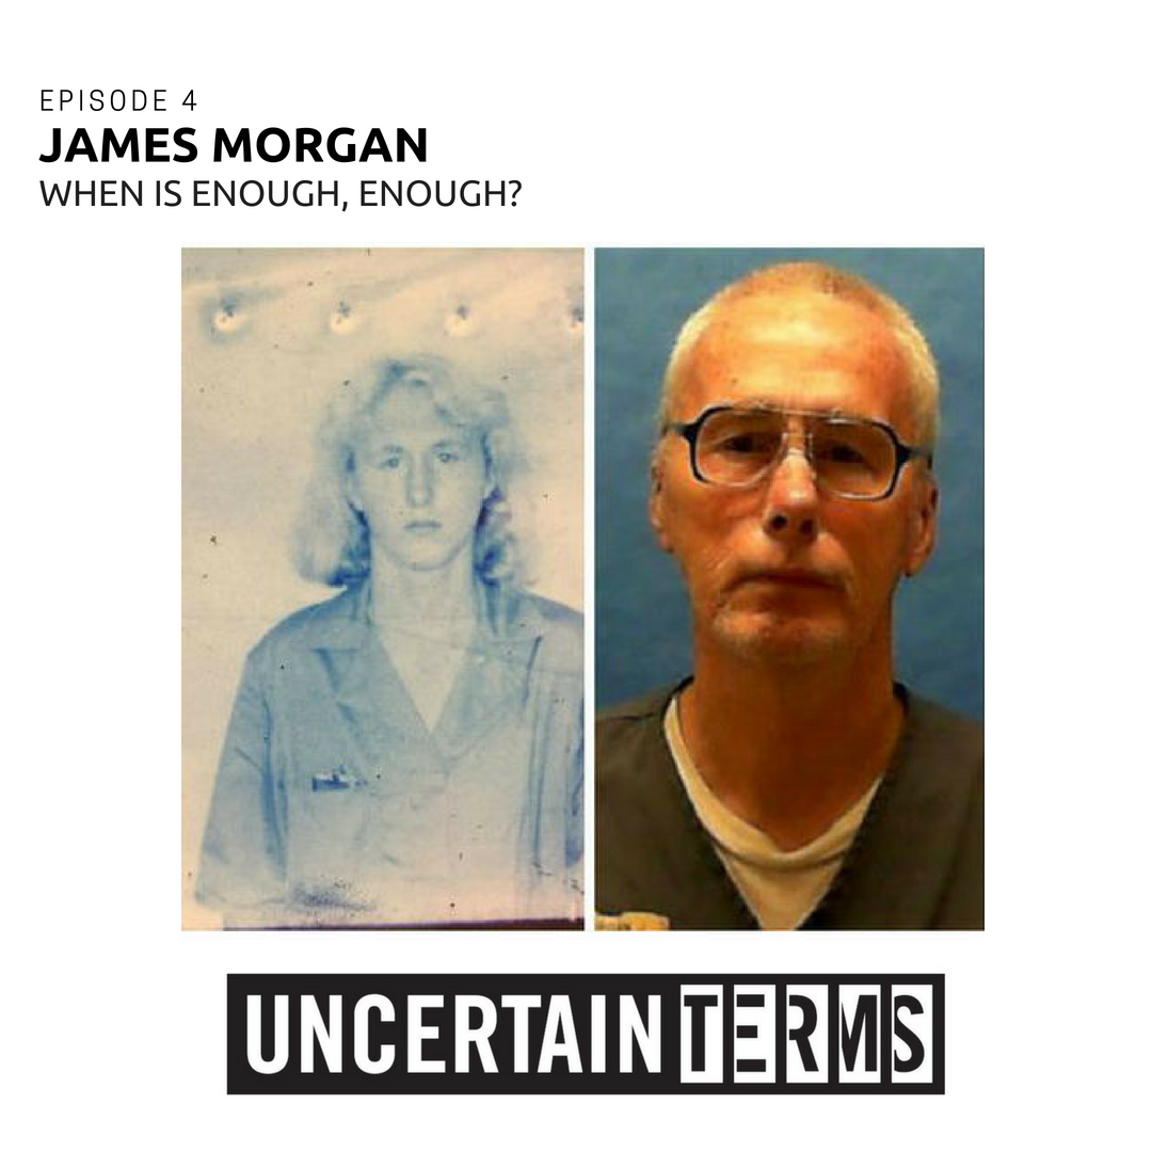 James Morgan was 16 when he stabbed a Stuart woman 67 times killing her in 1977. Now, he's returning to court to ask a judge to undo his life prison term and possibly set him free.